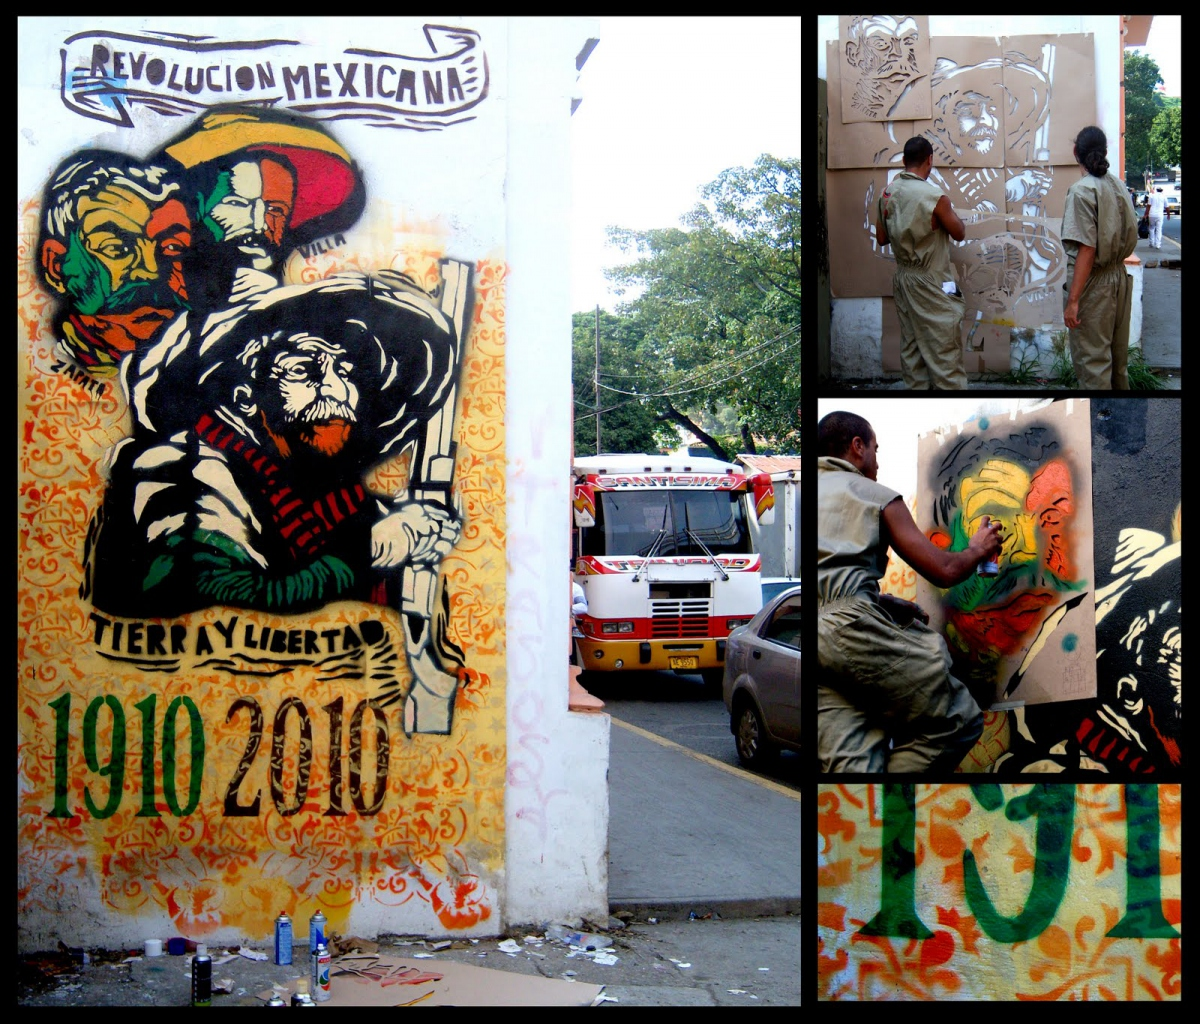 """Inspired by the popular art techniques of Guadalupe Posada, and in commemoration of the 100 year anniversary of the Mexican Revolution (1910-2010), Venezuela's Communicational Guerrilla prepared this stencil/mural with the phrase, """"Land and Liberty."""""""